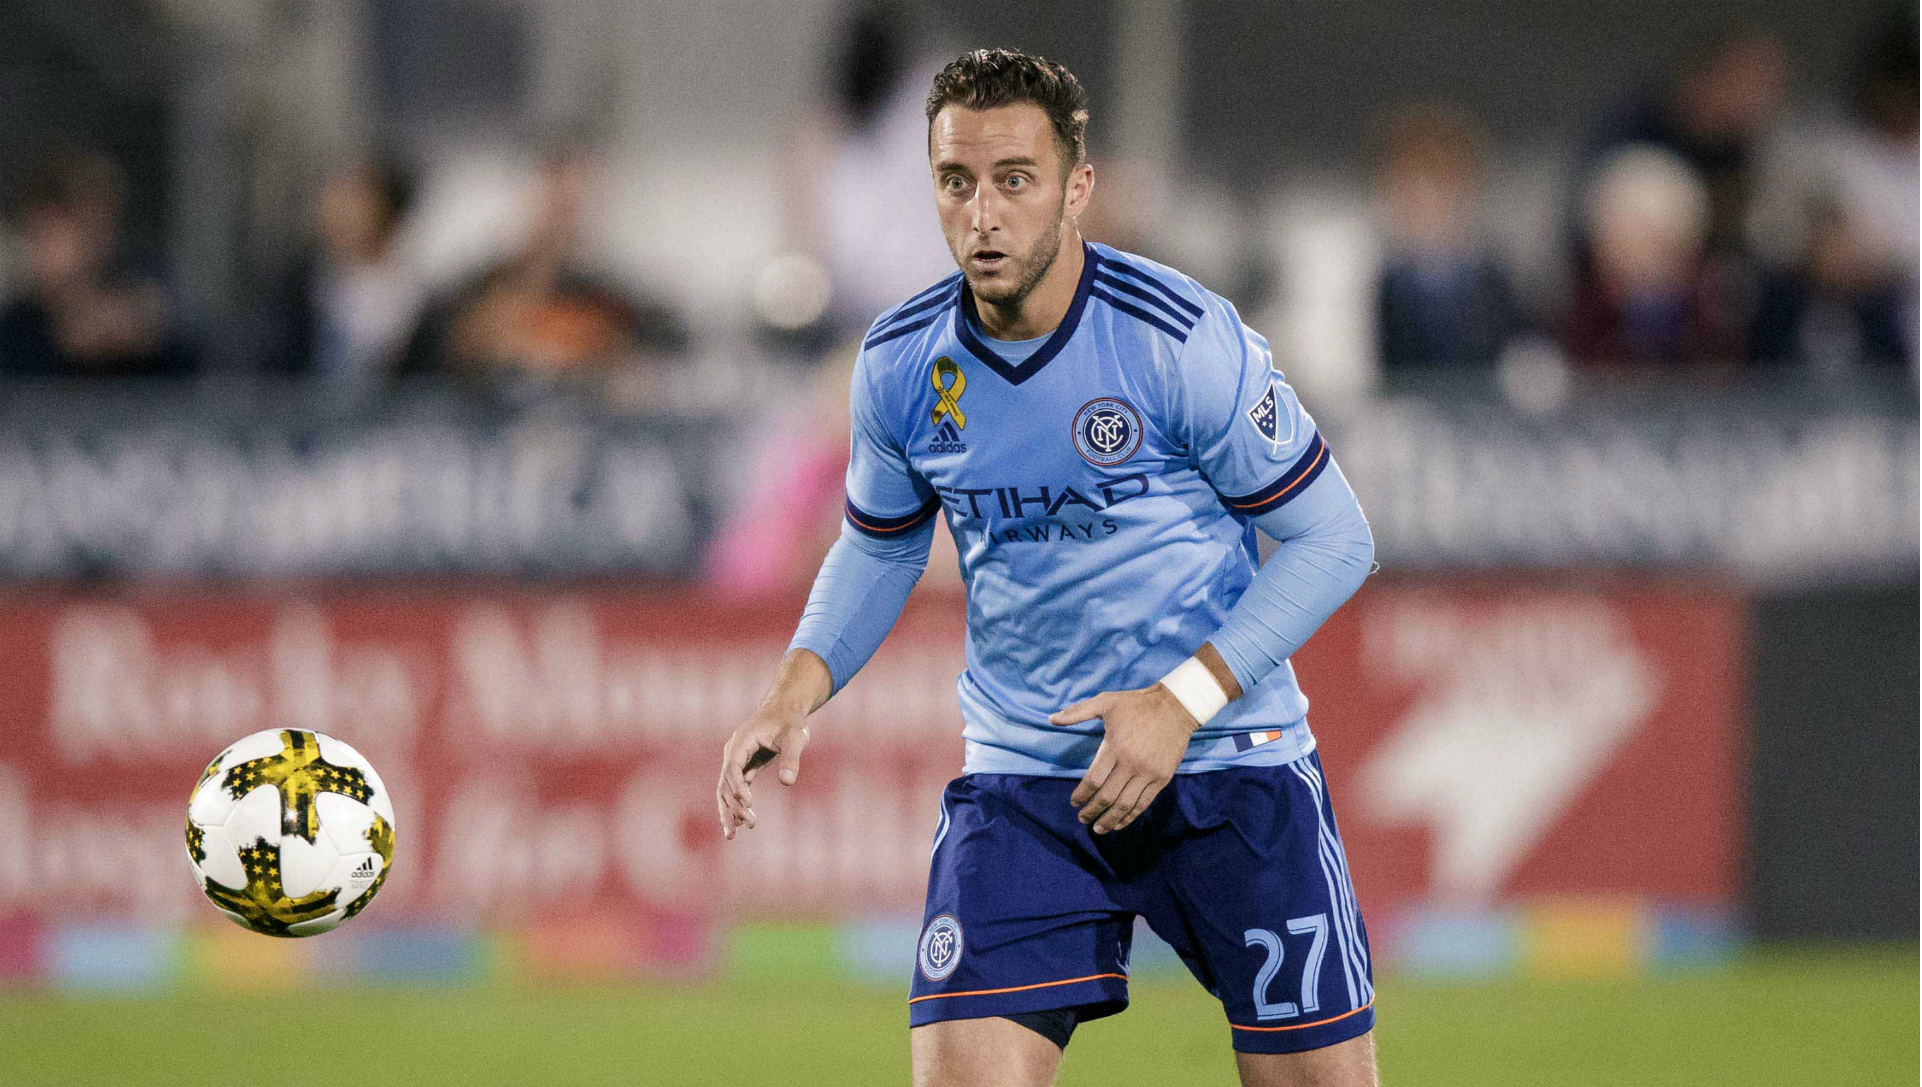 R.J. Allen New York City FC